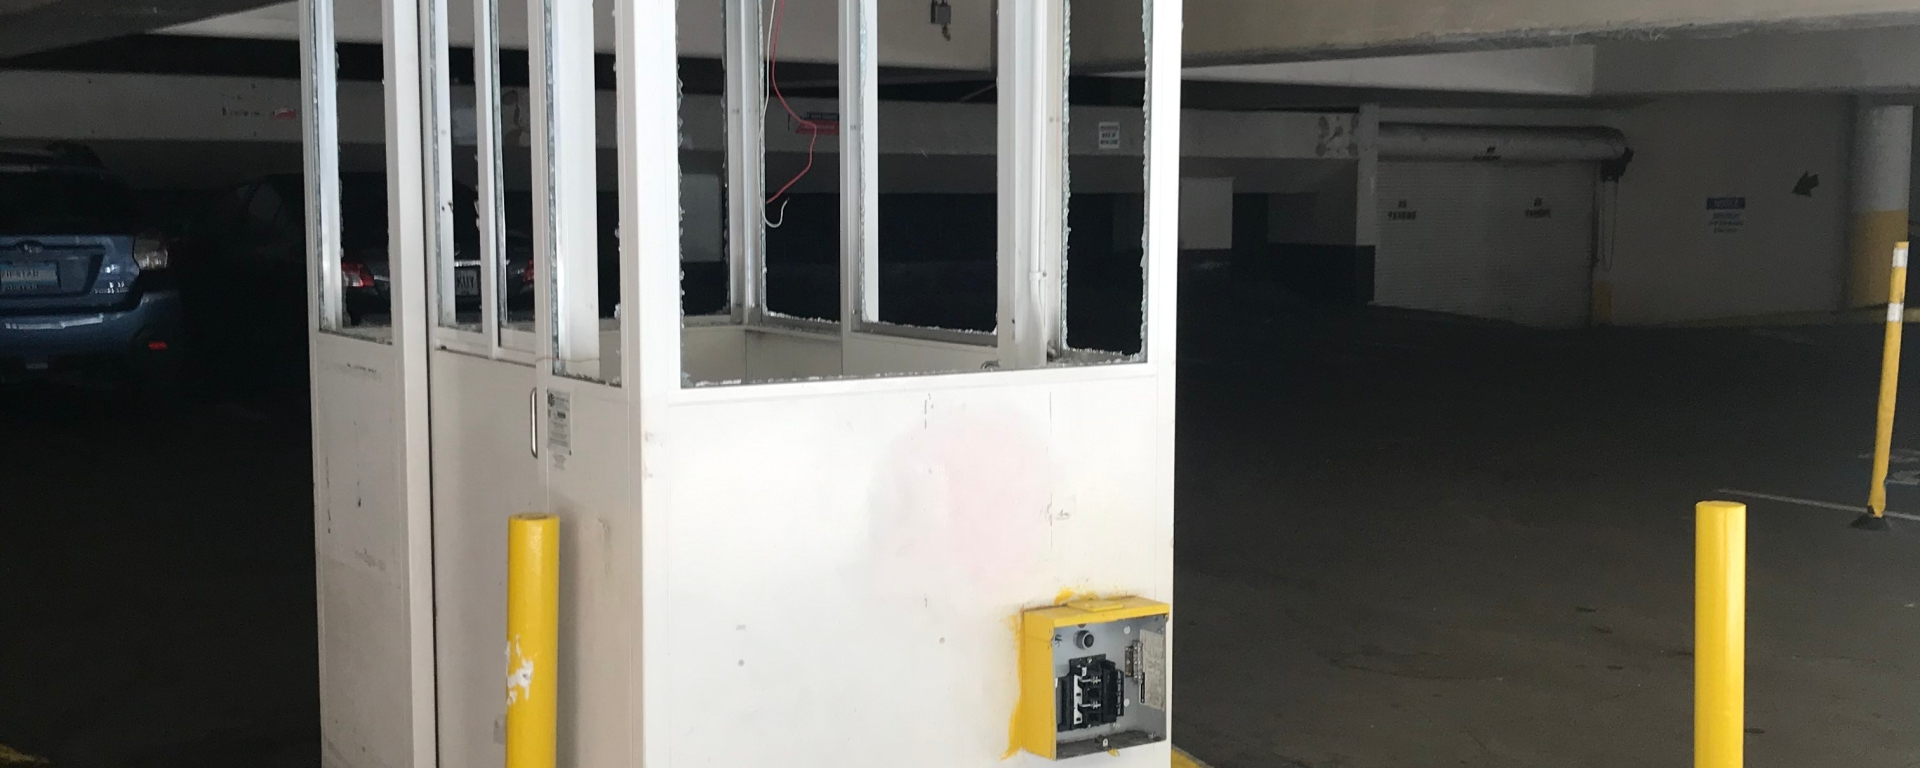 Car park booth with smashed windows